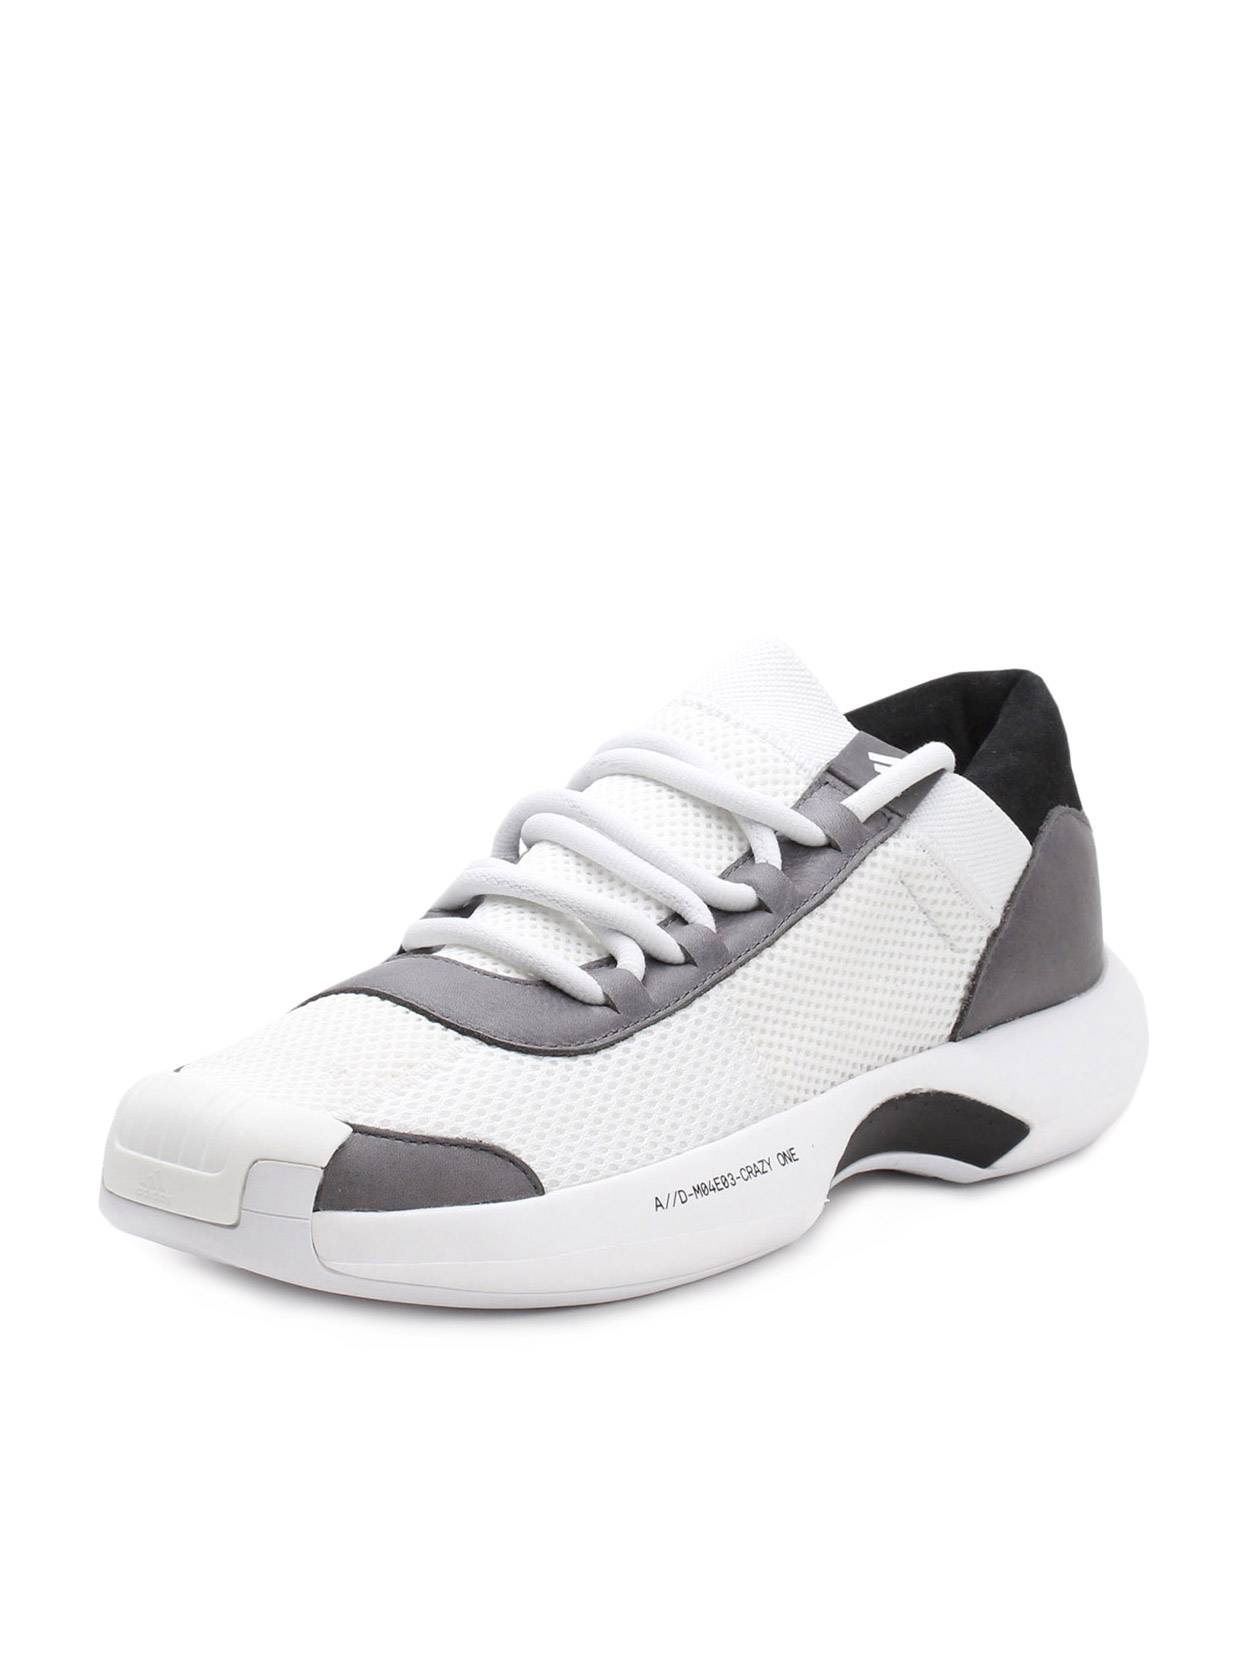 Adidas Mens Crazy 1 A D Consortium Grey White AC8213 by Adidas